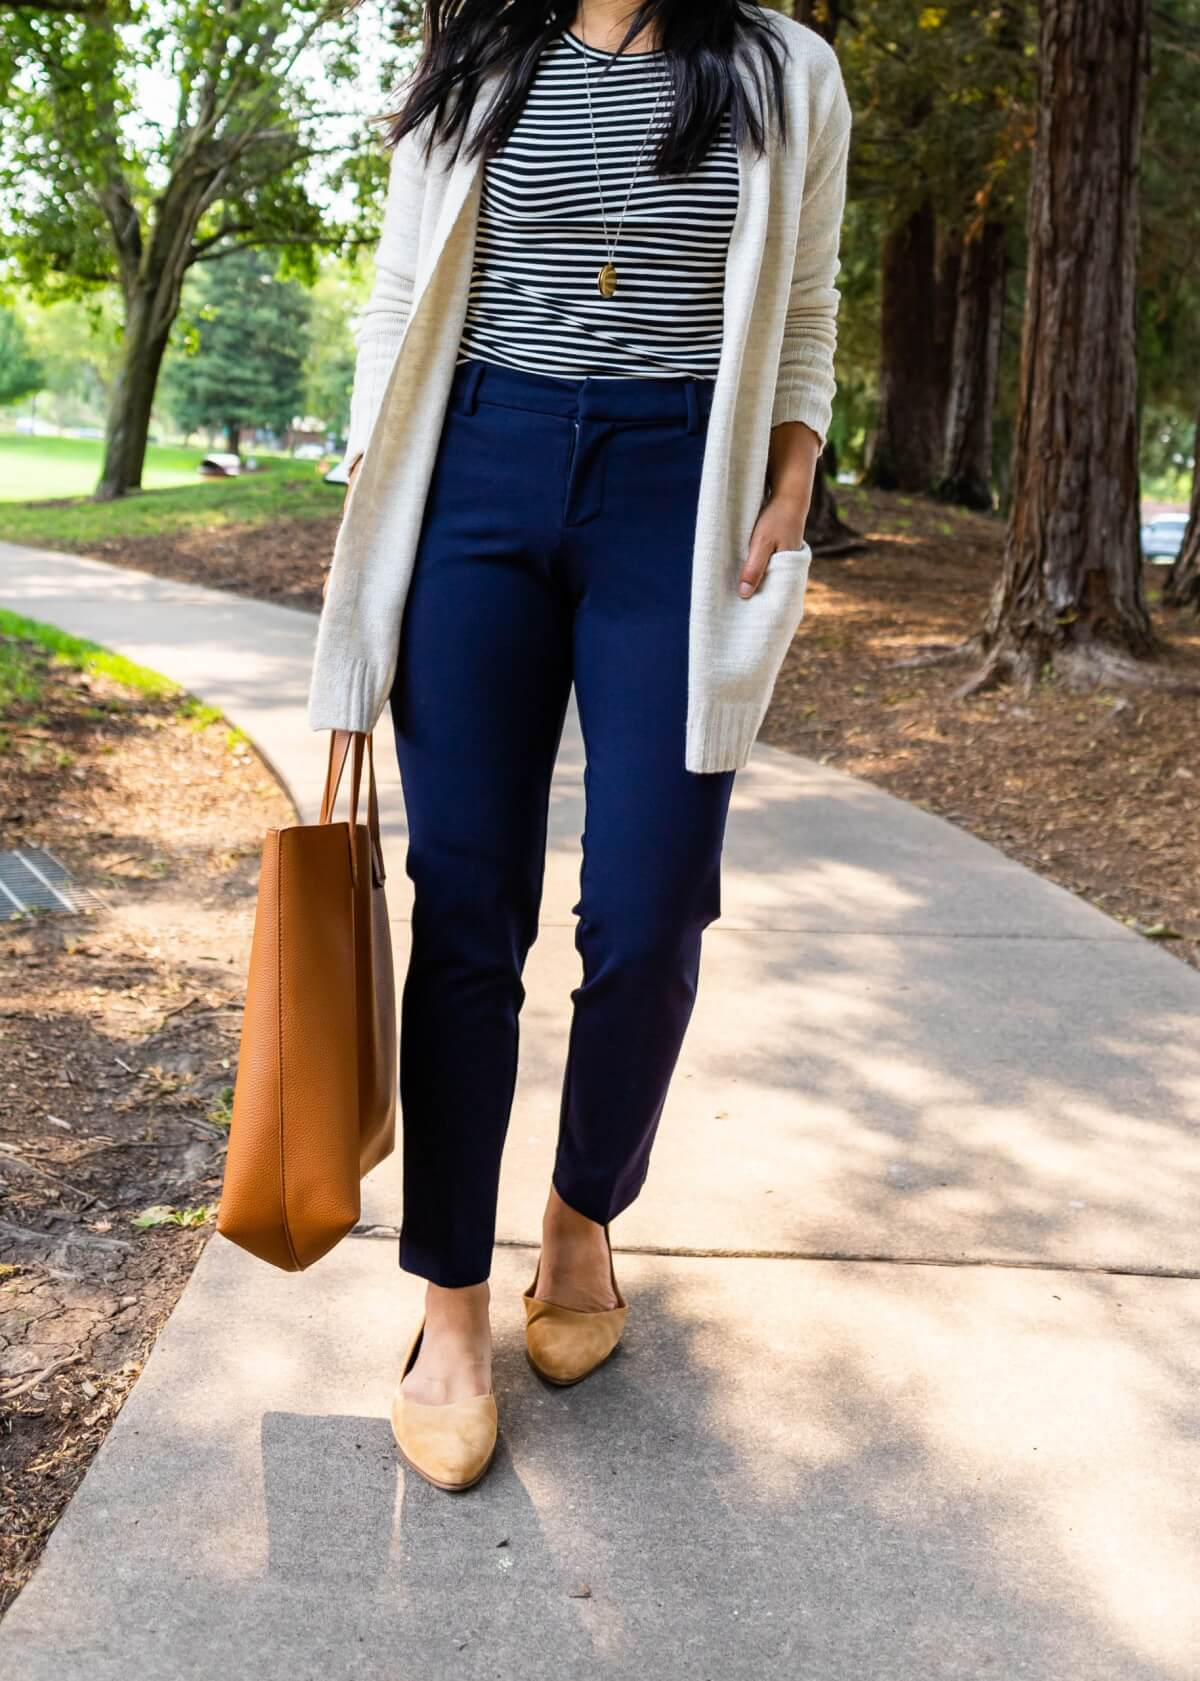 Comfy Casual Work Outfit: black and white striped long sleeve top + navy trousers + cream cardigan + gold pendant necklace + tan suede flats + tan tote